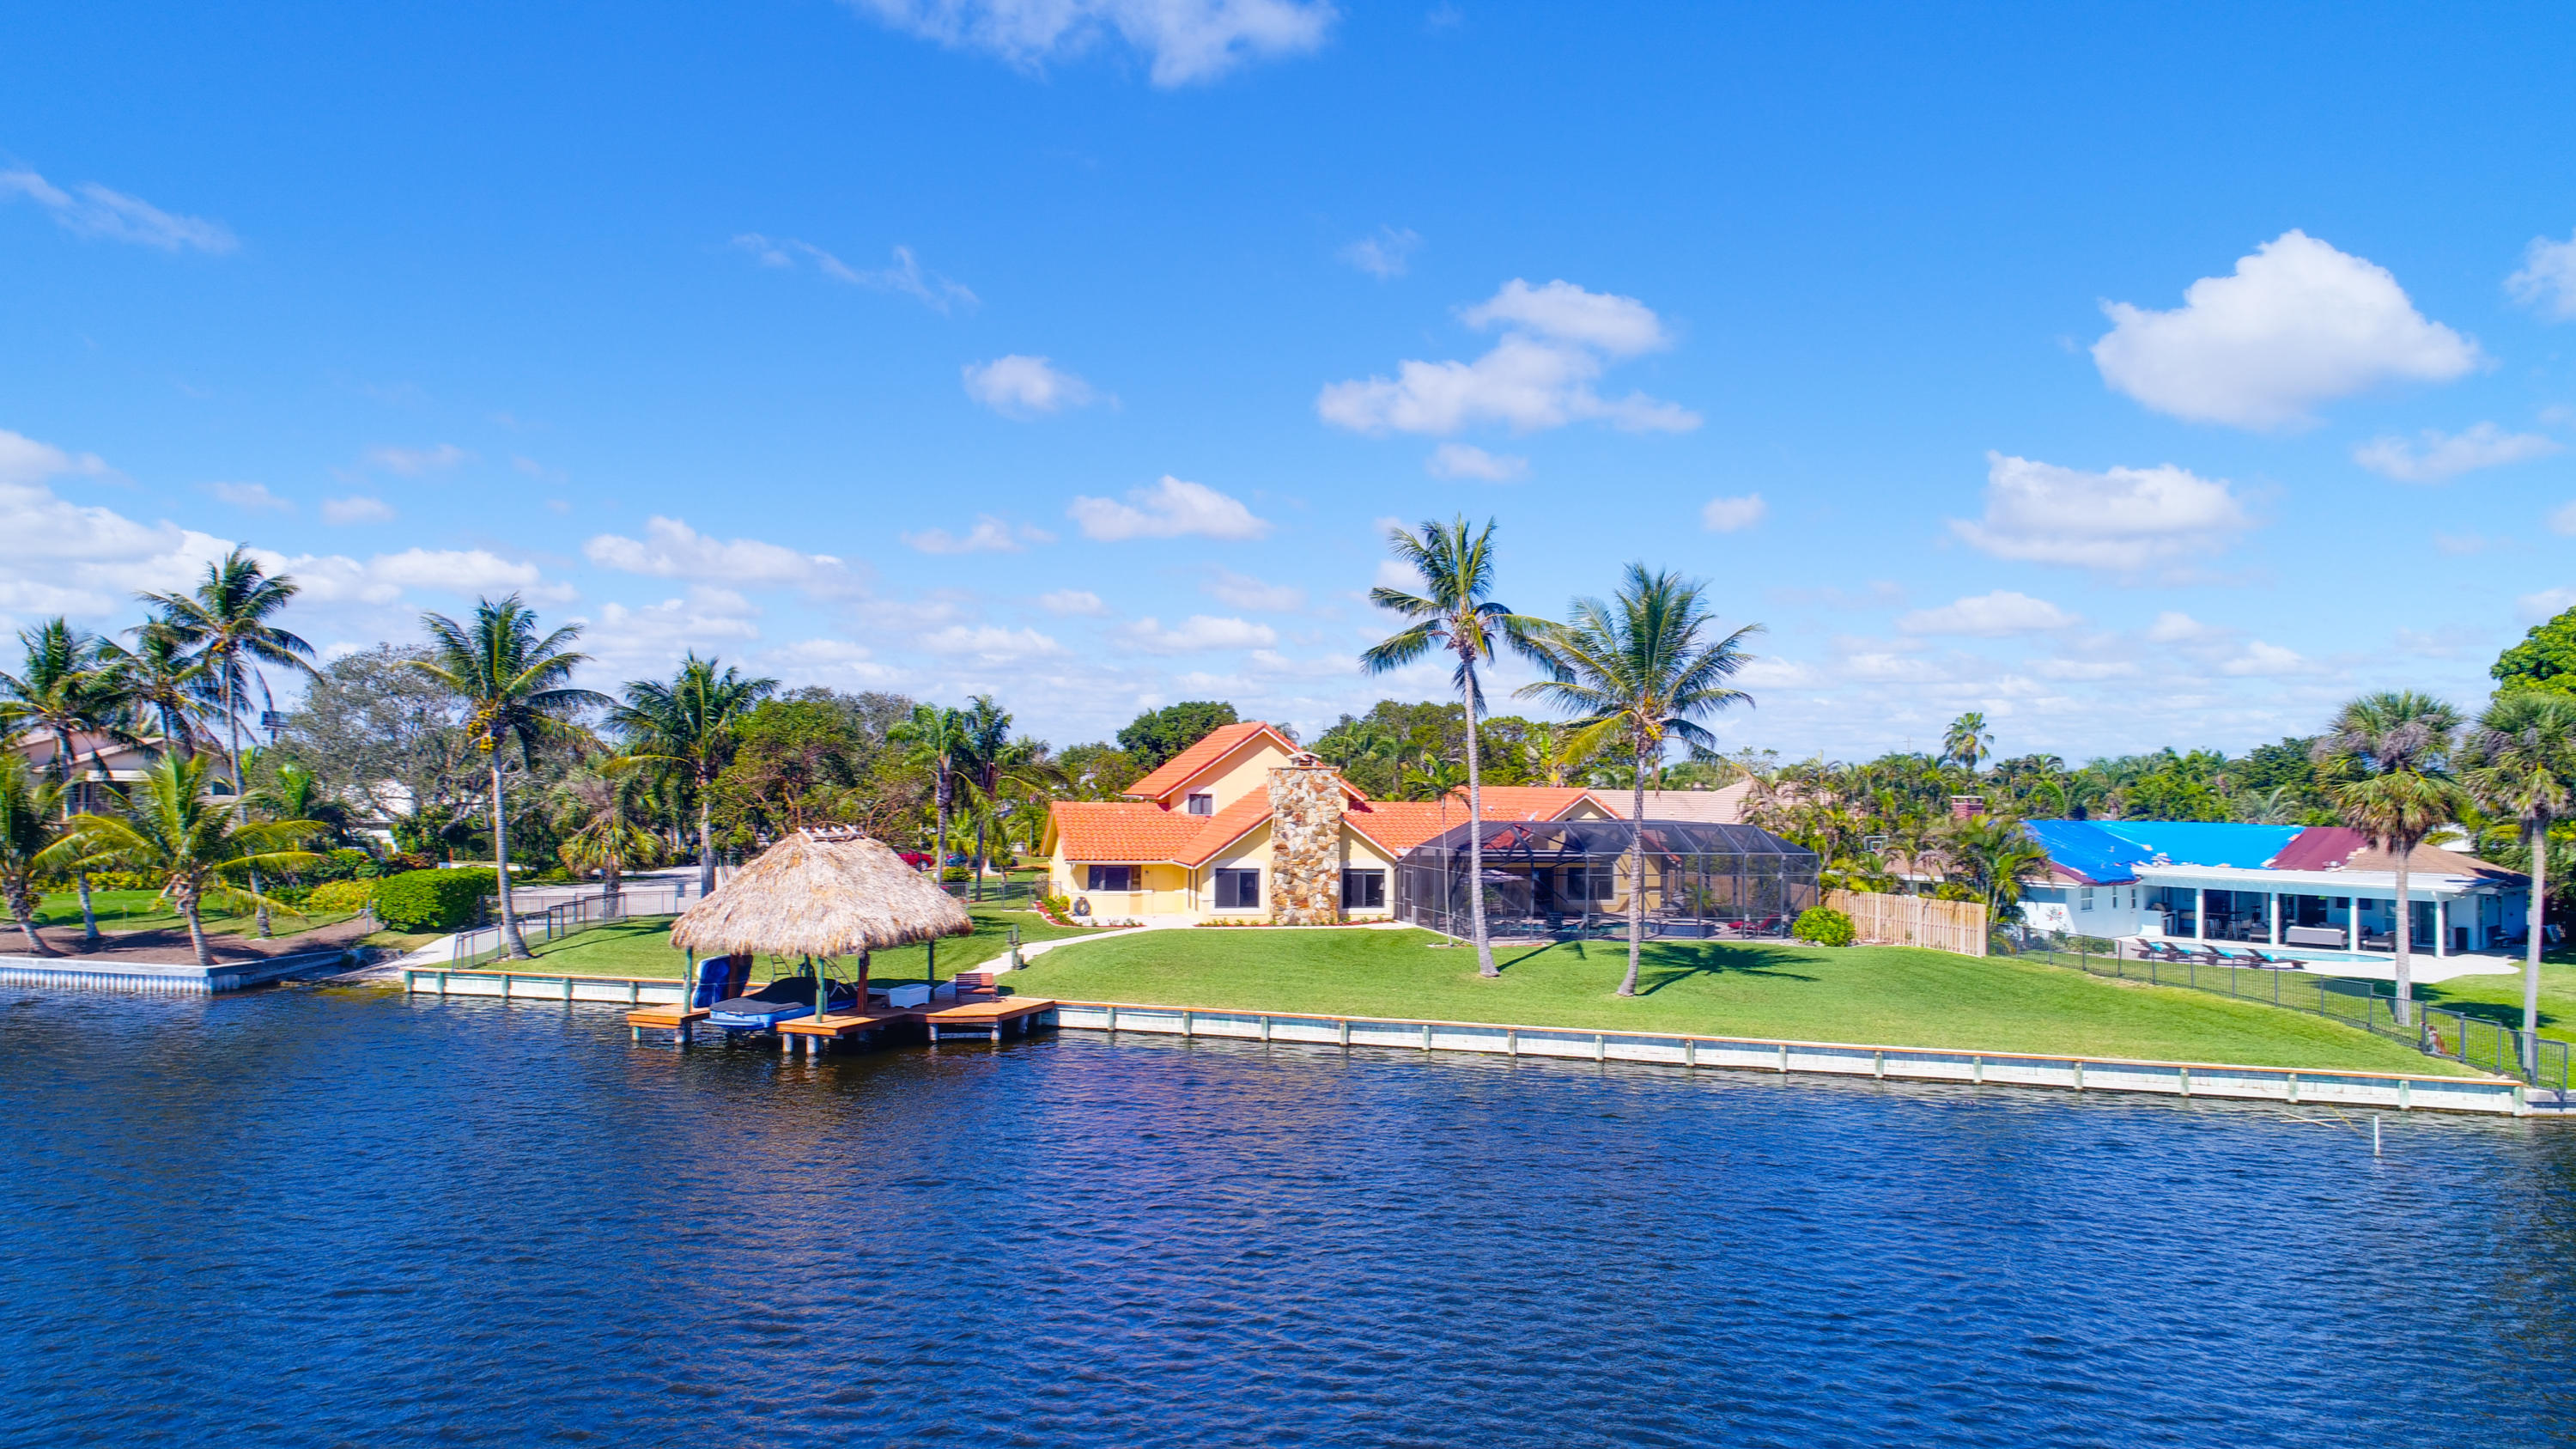 907 SW 38th Court, Boynton Beach, Florida 4 Bedroom as one of Homes & Land Real Estate